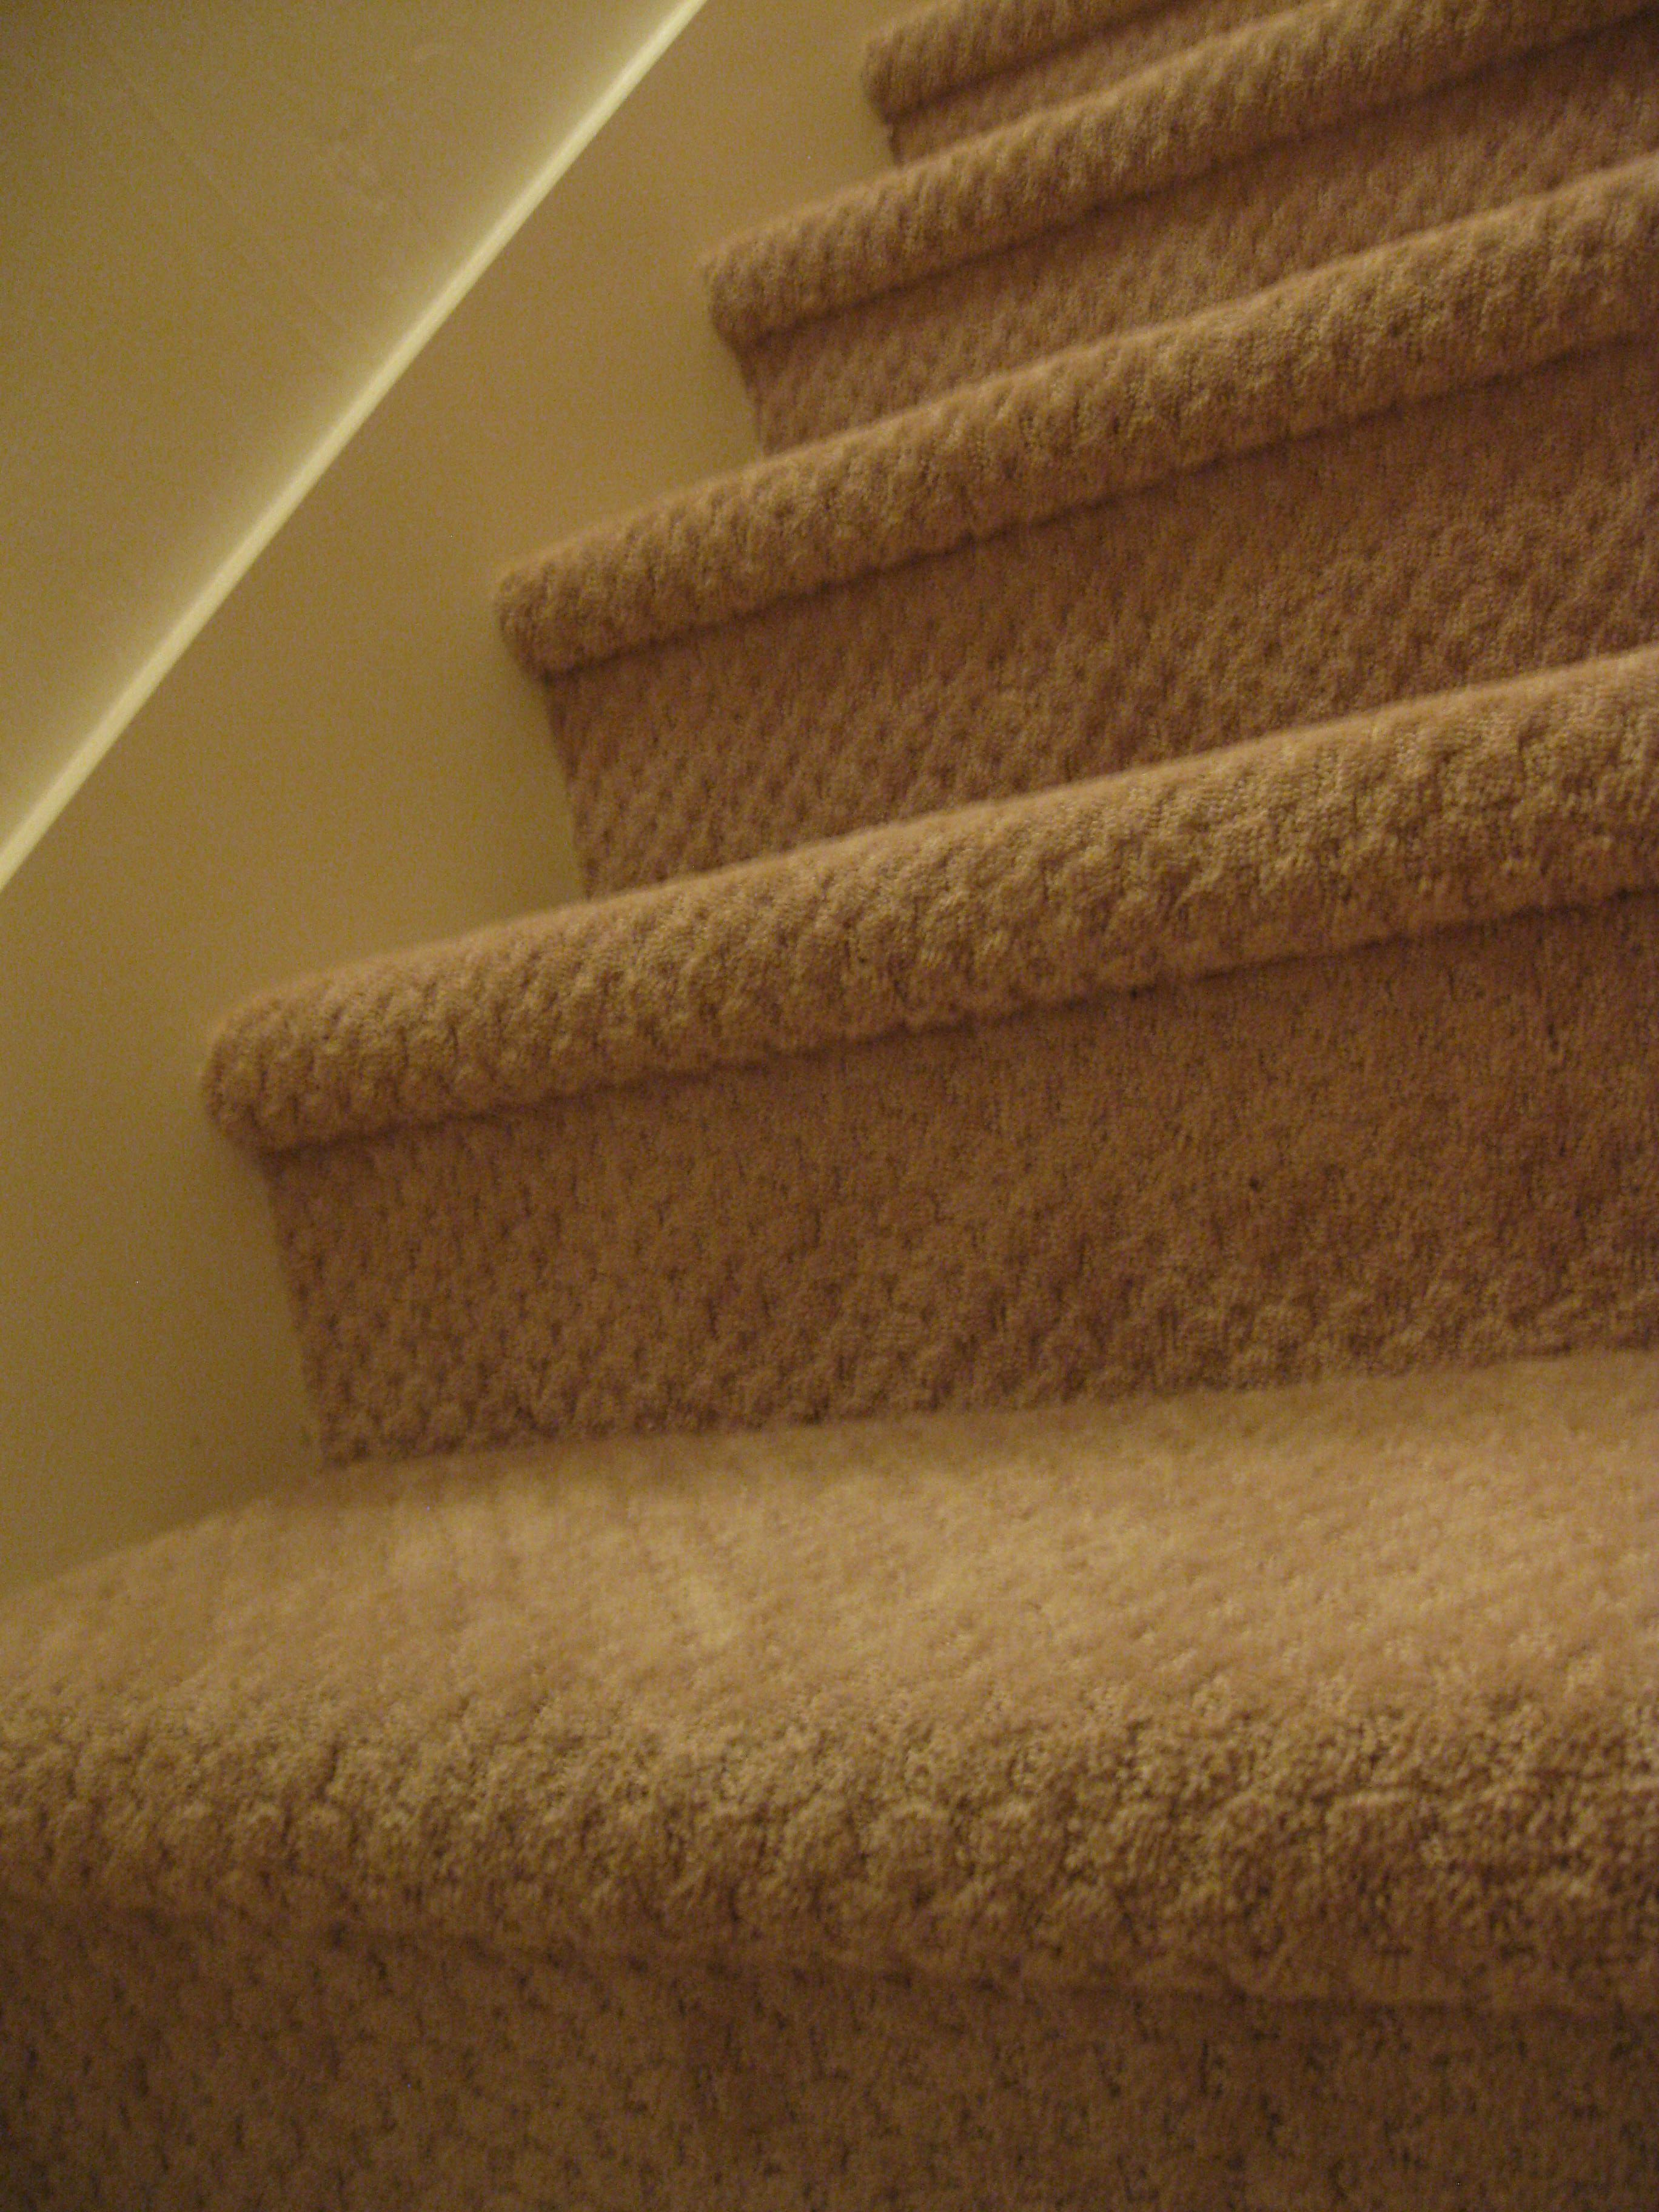 Stairs With Berber Carpet Google Search Textured Carpet | Berber Carpet For Stairs | Best Quality | Contemporary | Decorative | Textured | Marine Backing